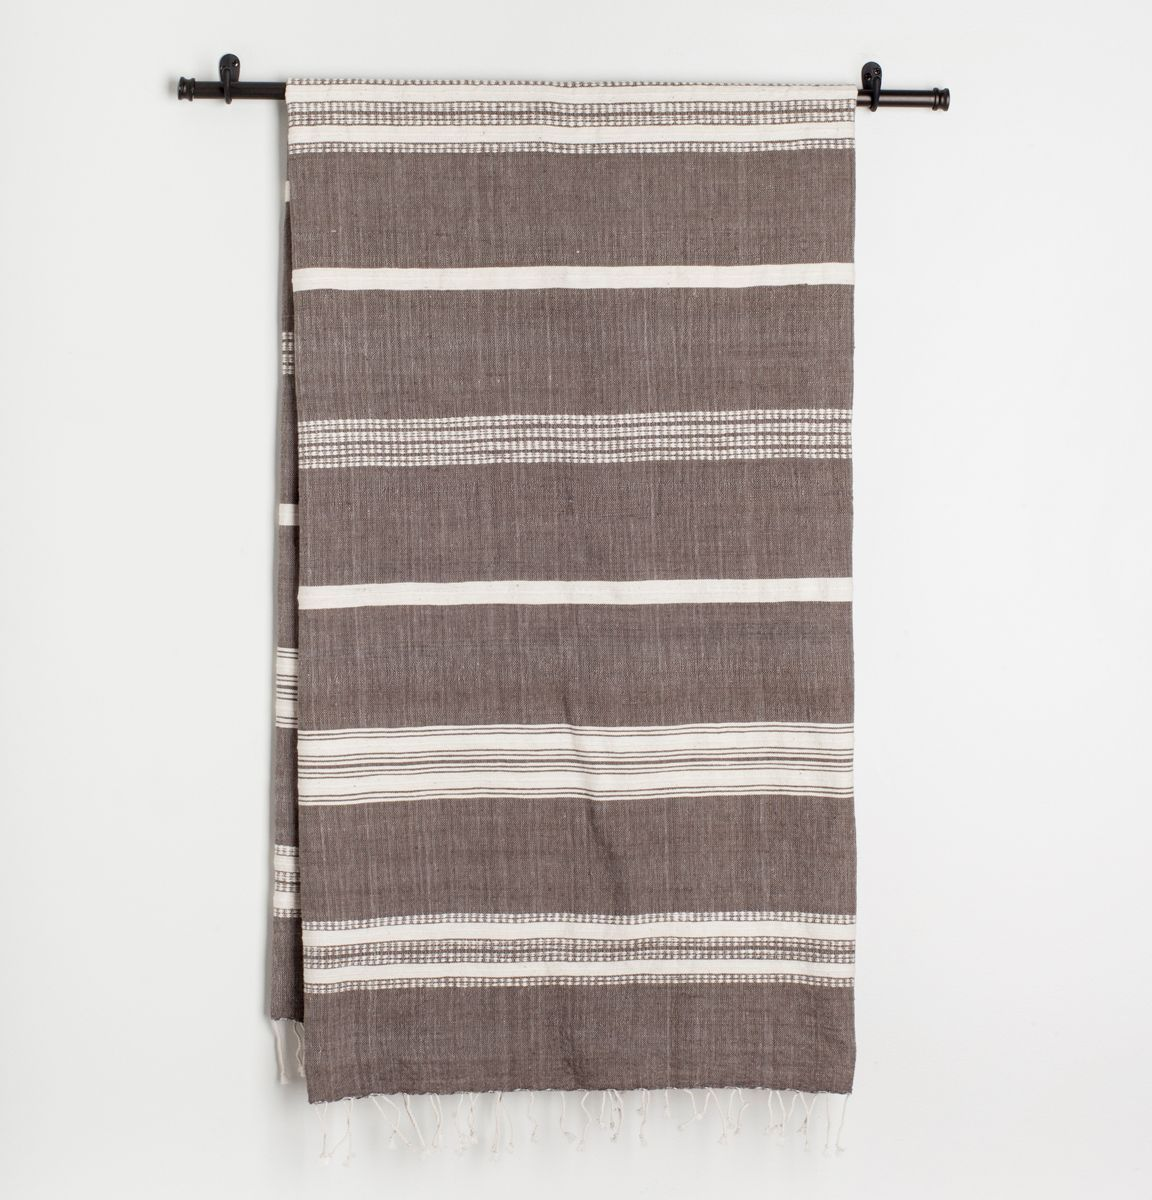 Aden Bath Towel - May Wynn